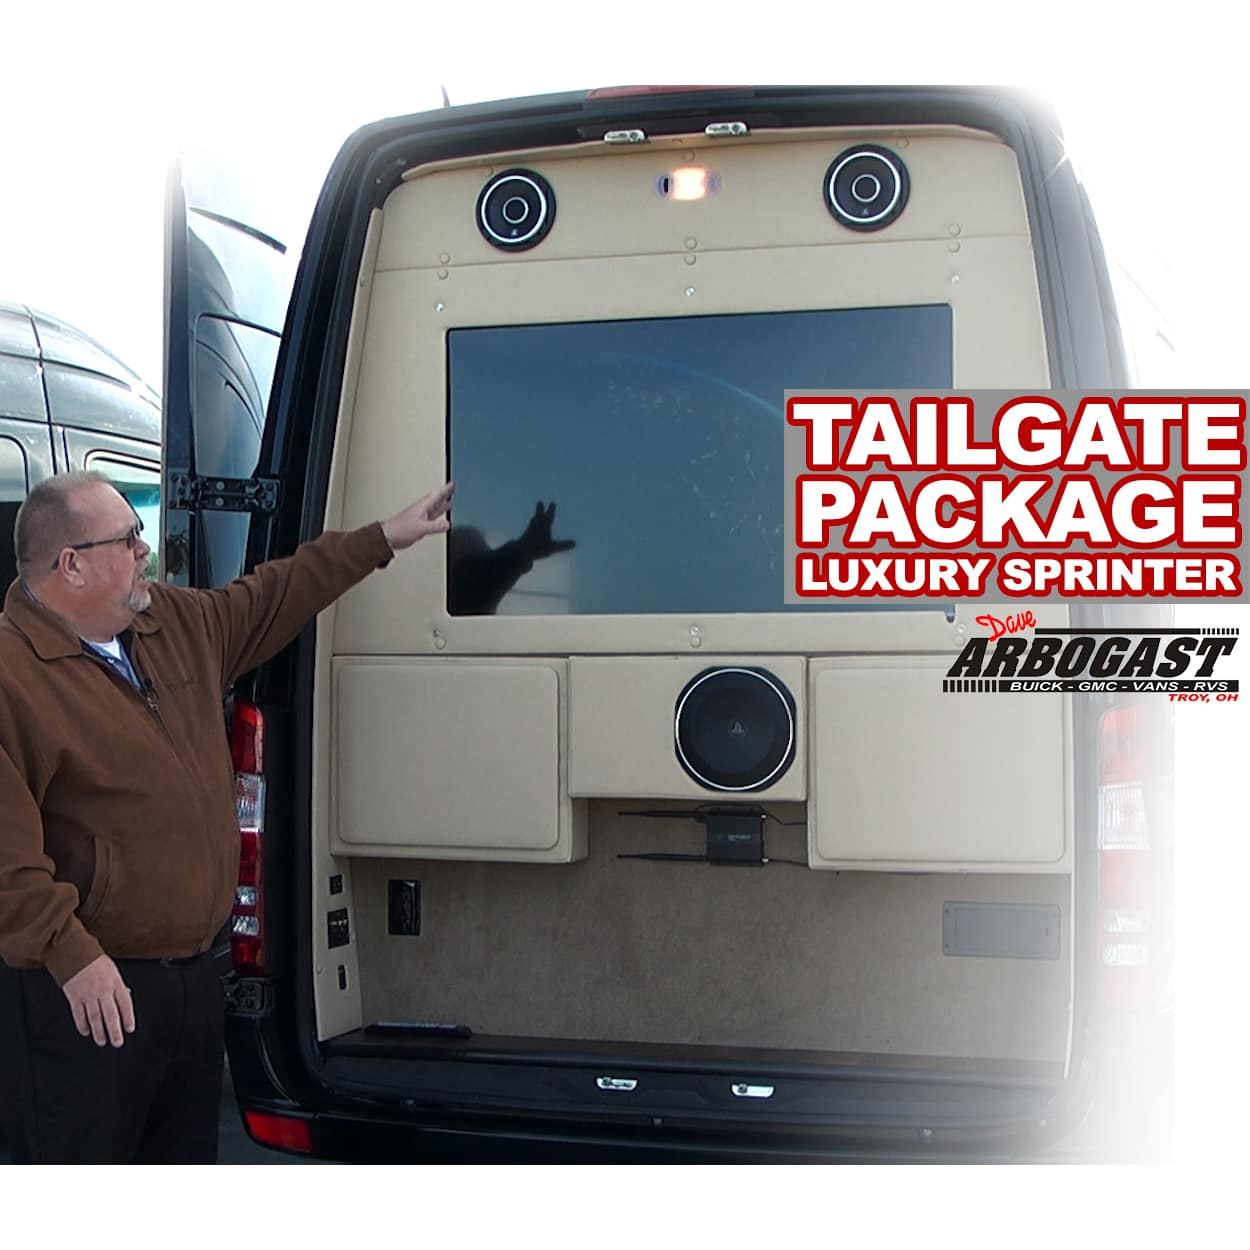 Luxury Sprinter Vans at Dave Arbogast